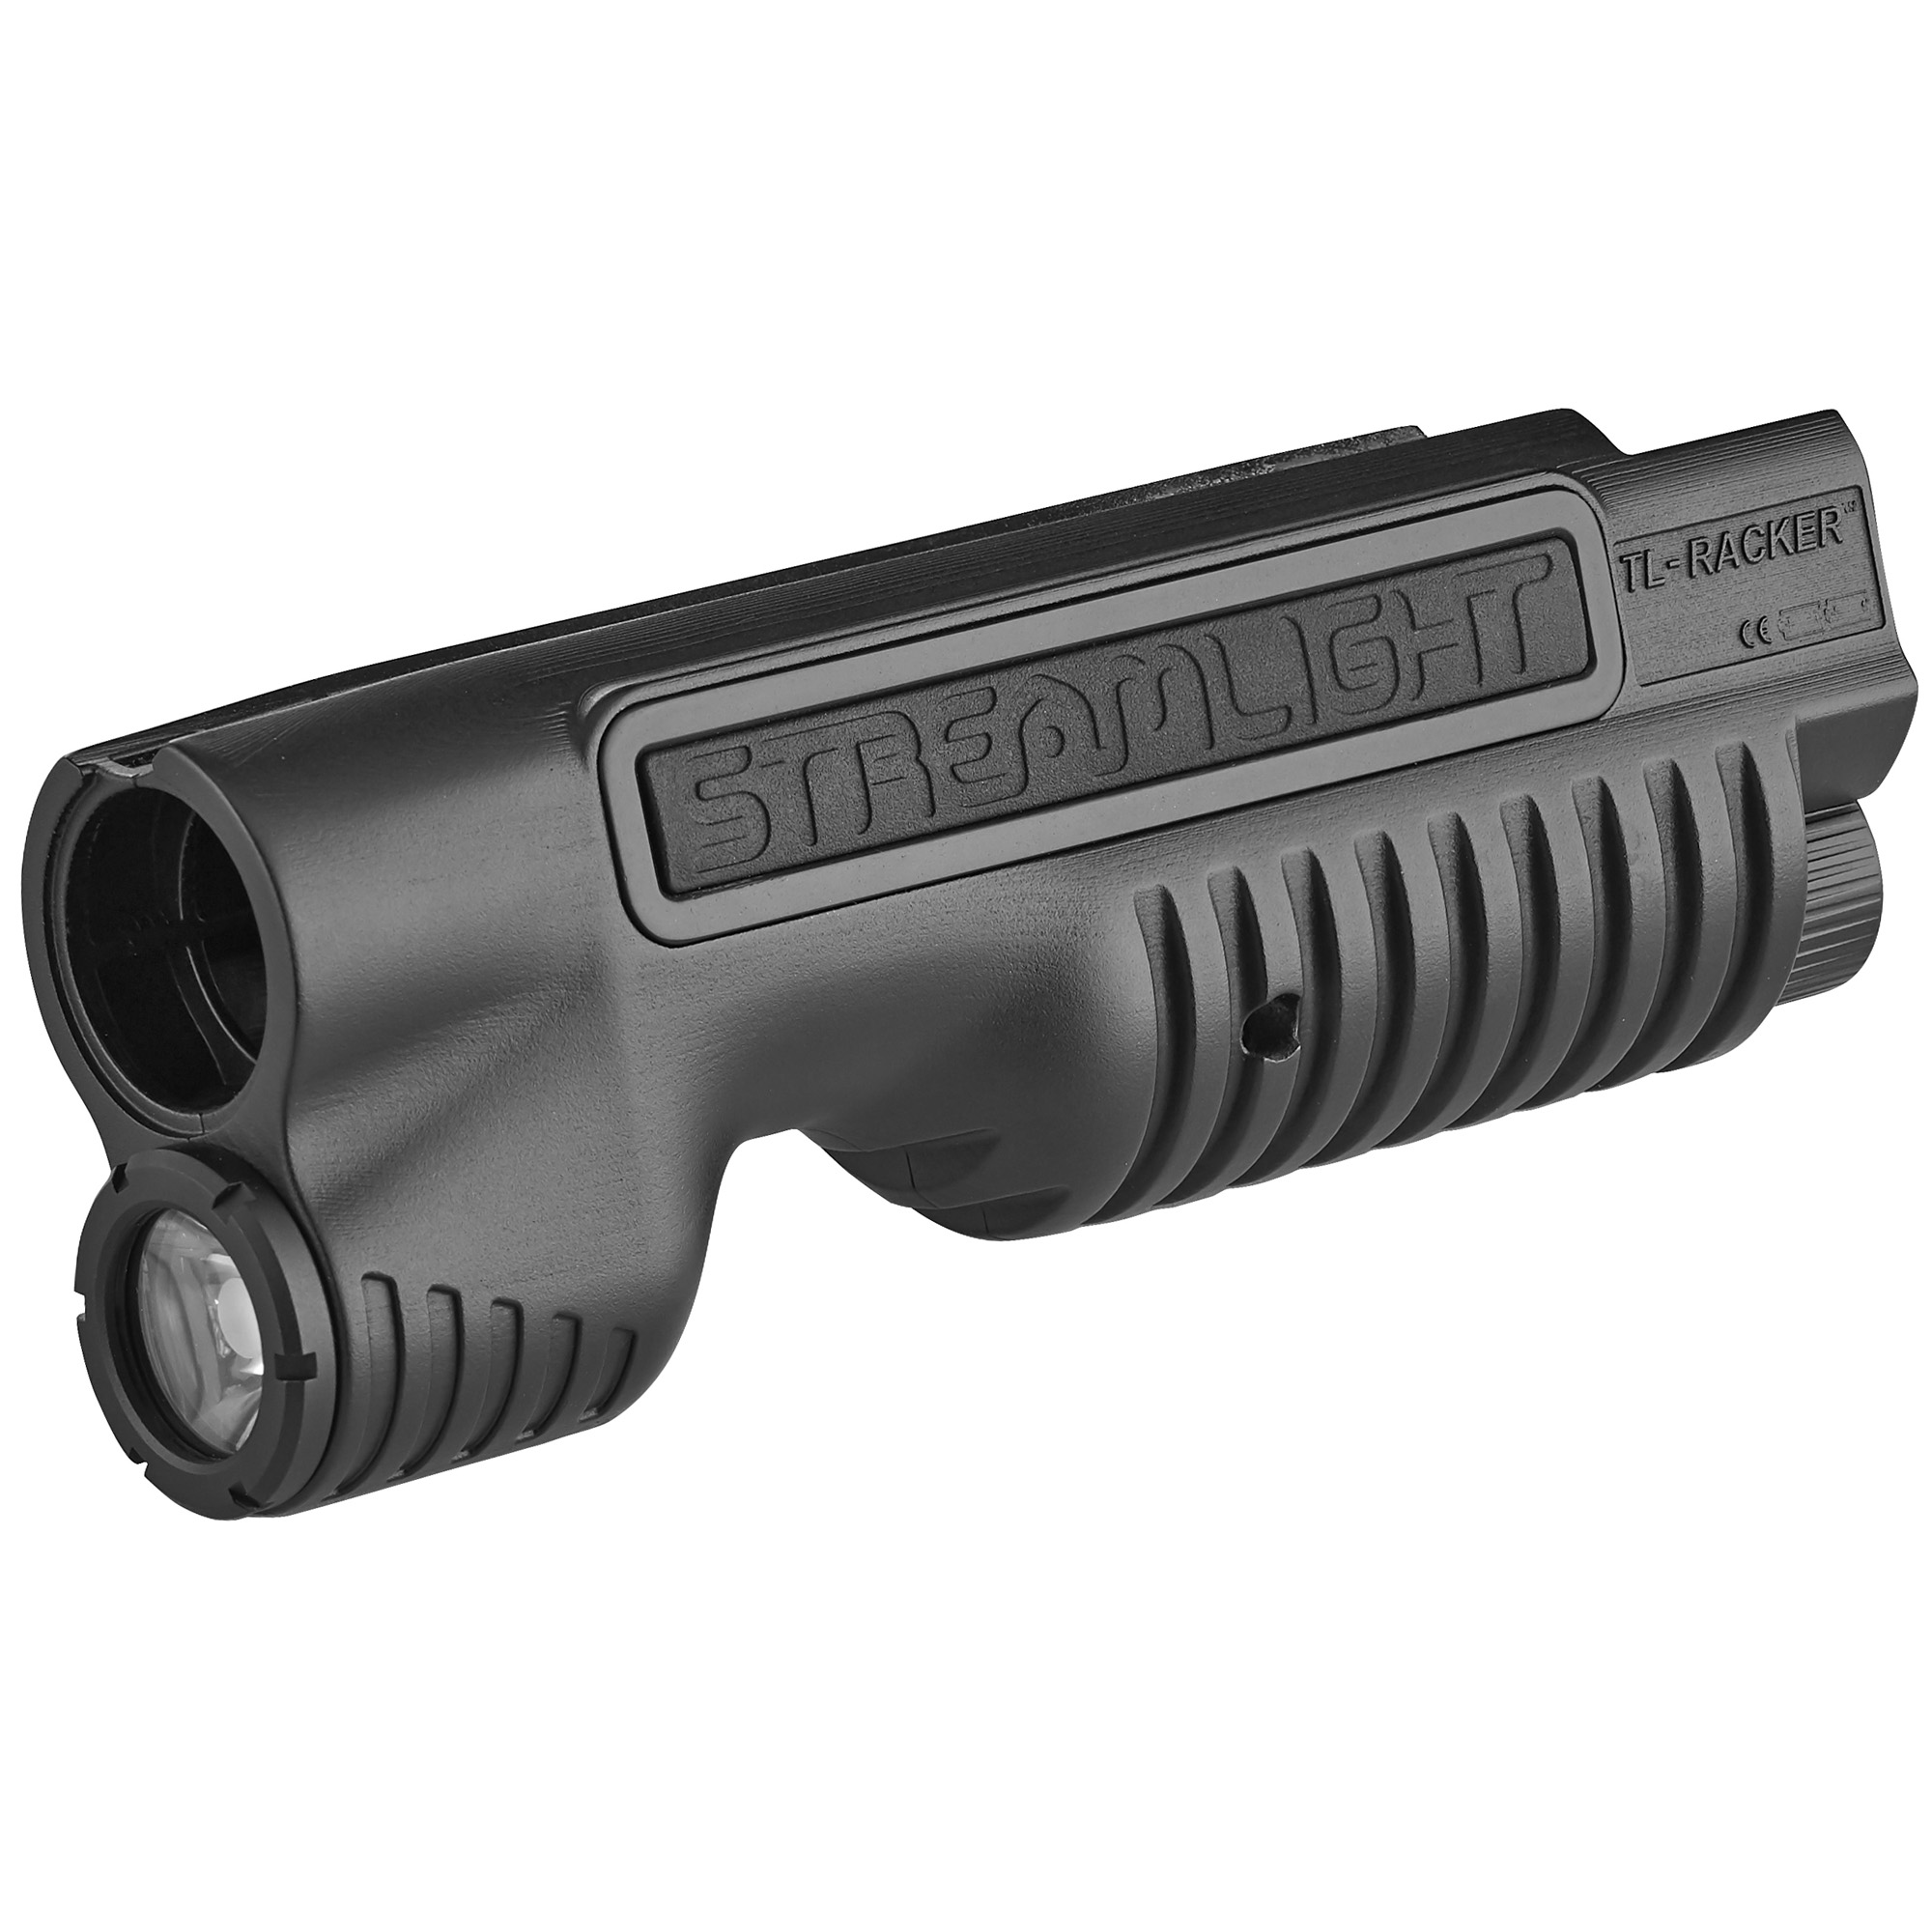 "With the TL-Racker"" Streamlight presents an all-in-one integrated shotgun forend light. It features a sleek design that reduces snag hazards by eliminating the need for remote cords. Ideal for shotgun breaching"" close quarter operations or elevating your home defense options"